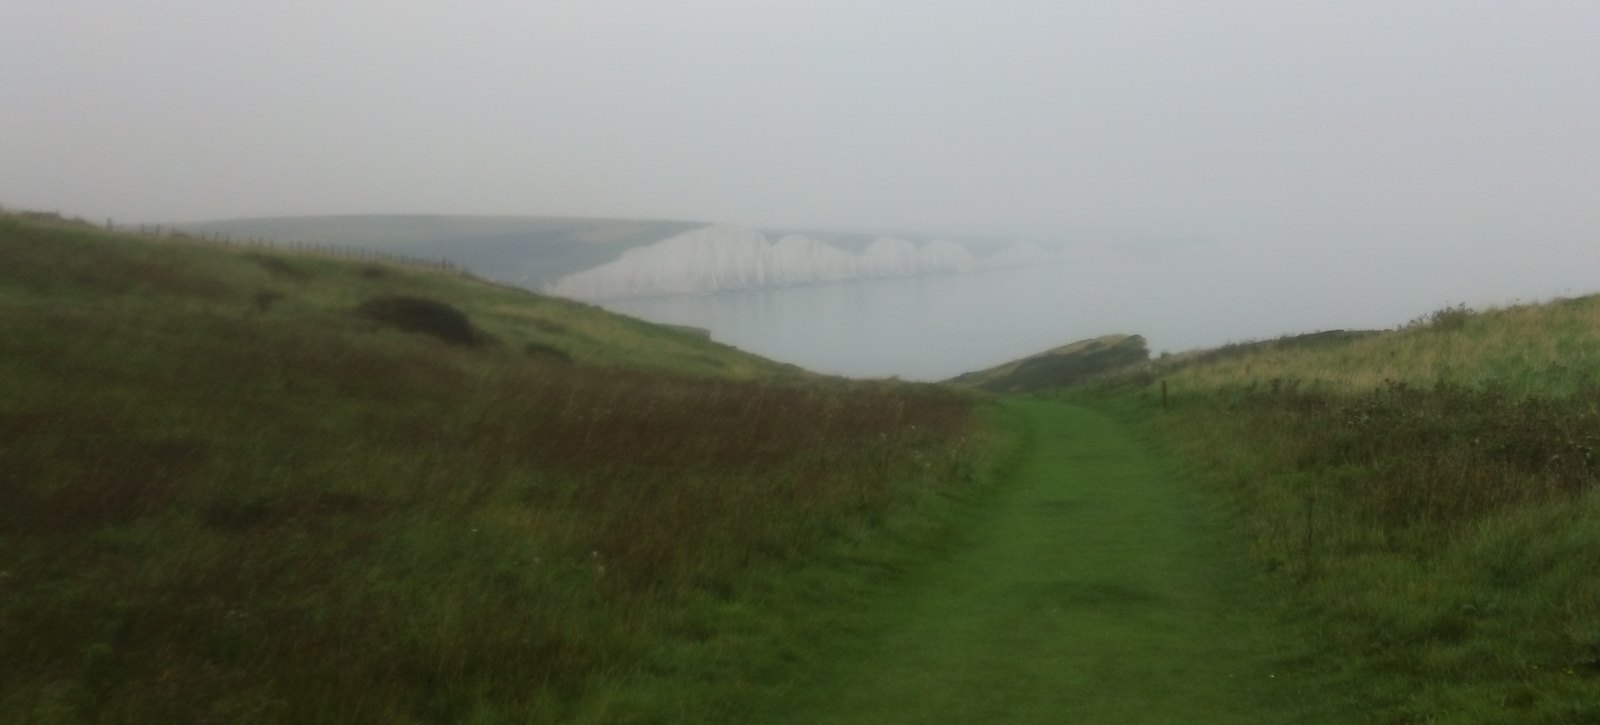 Misty sisters Sussex coast